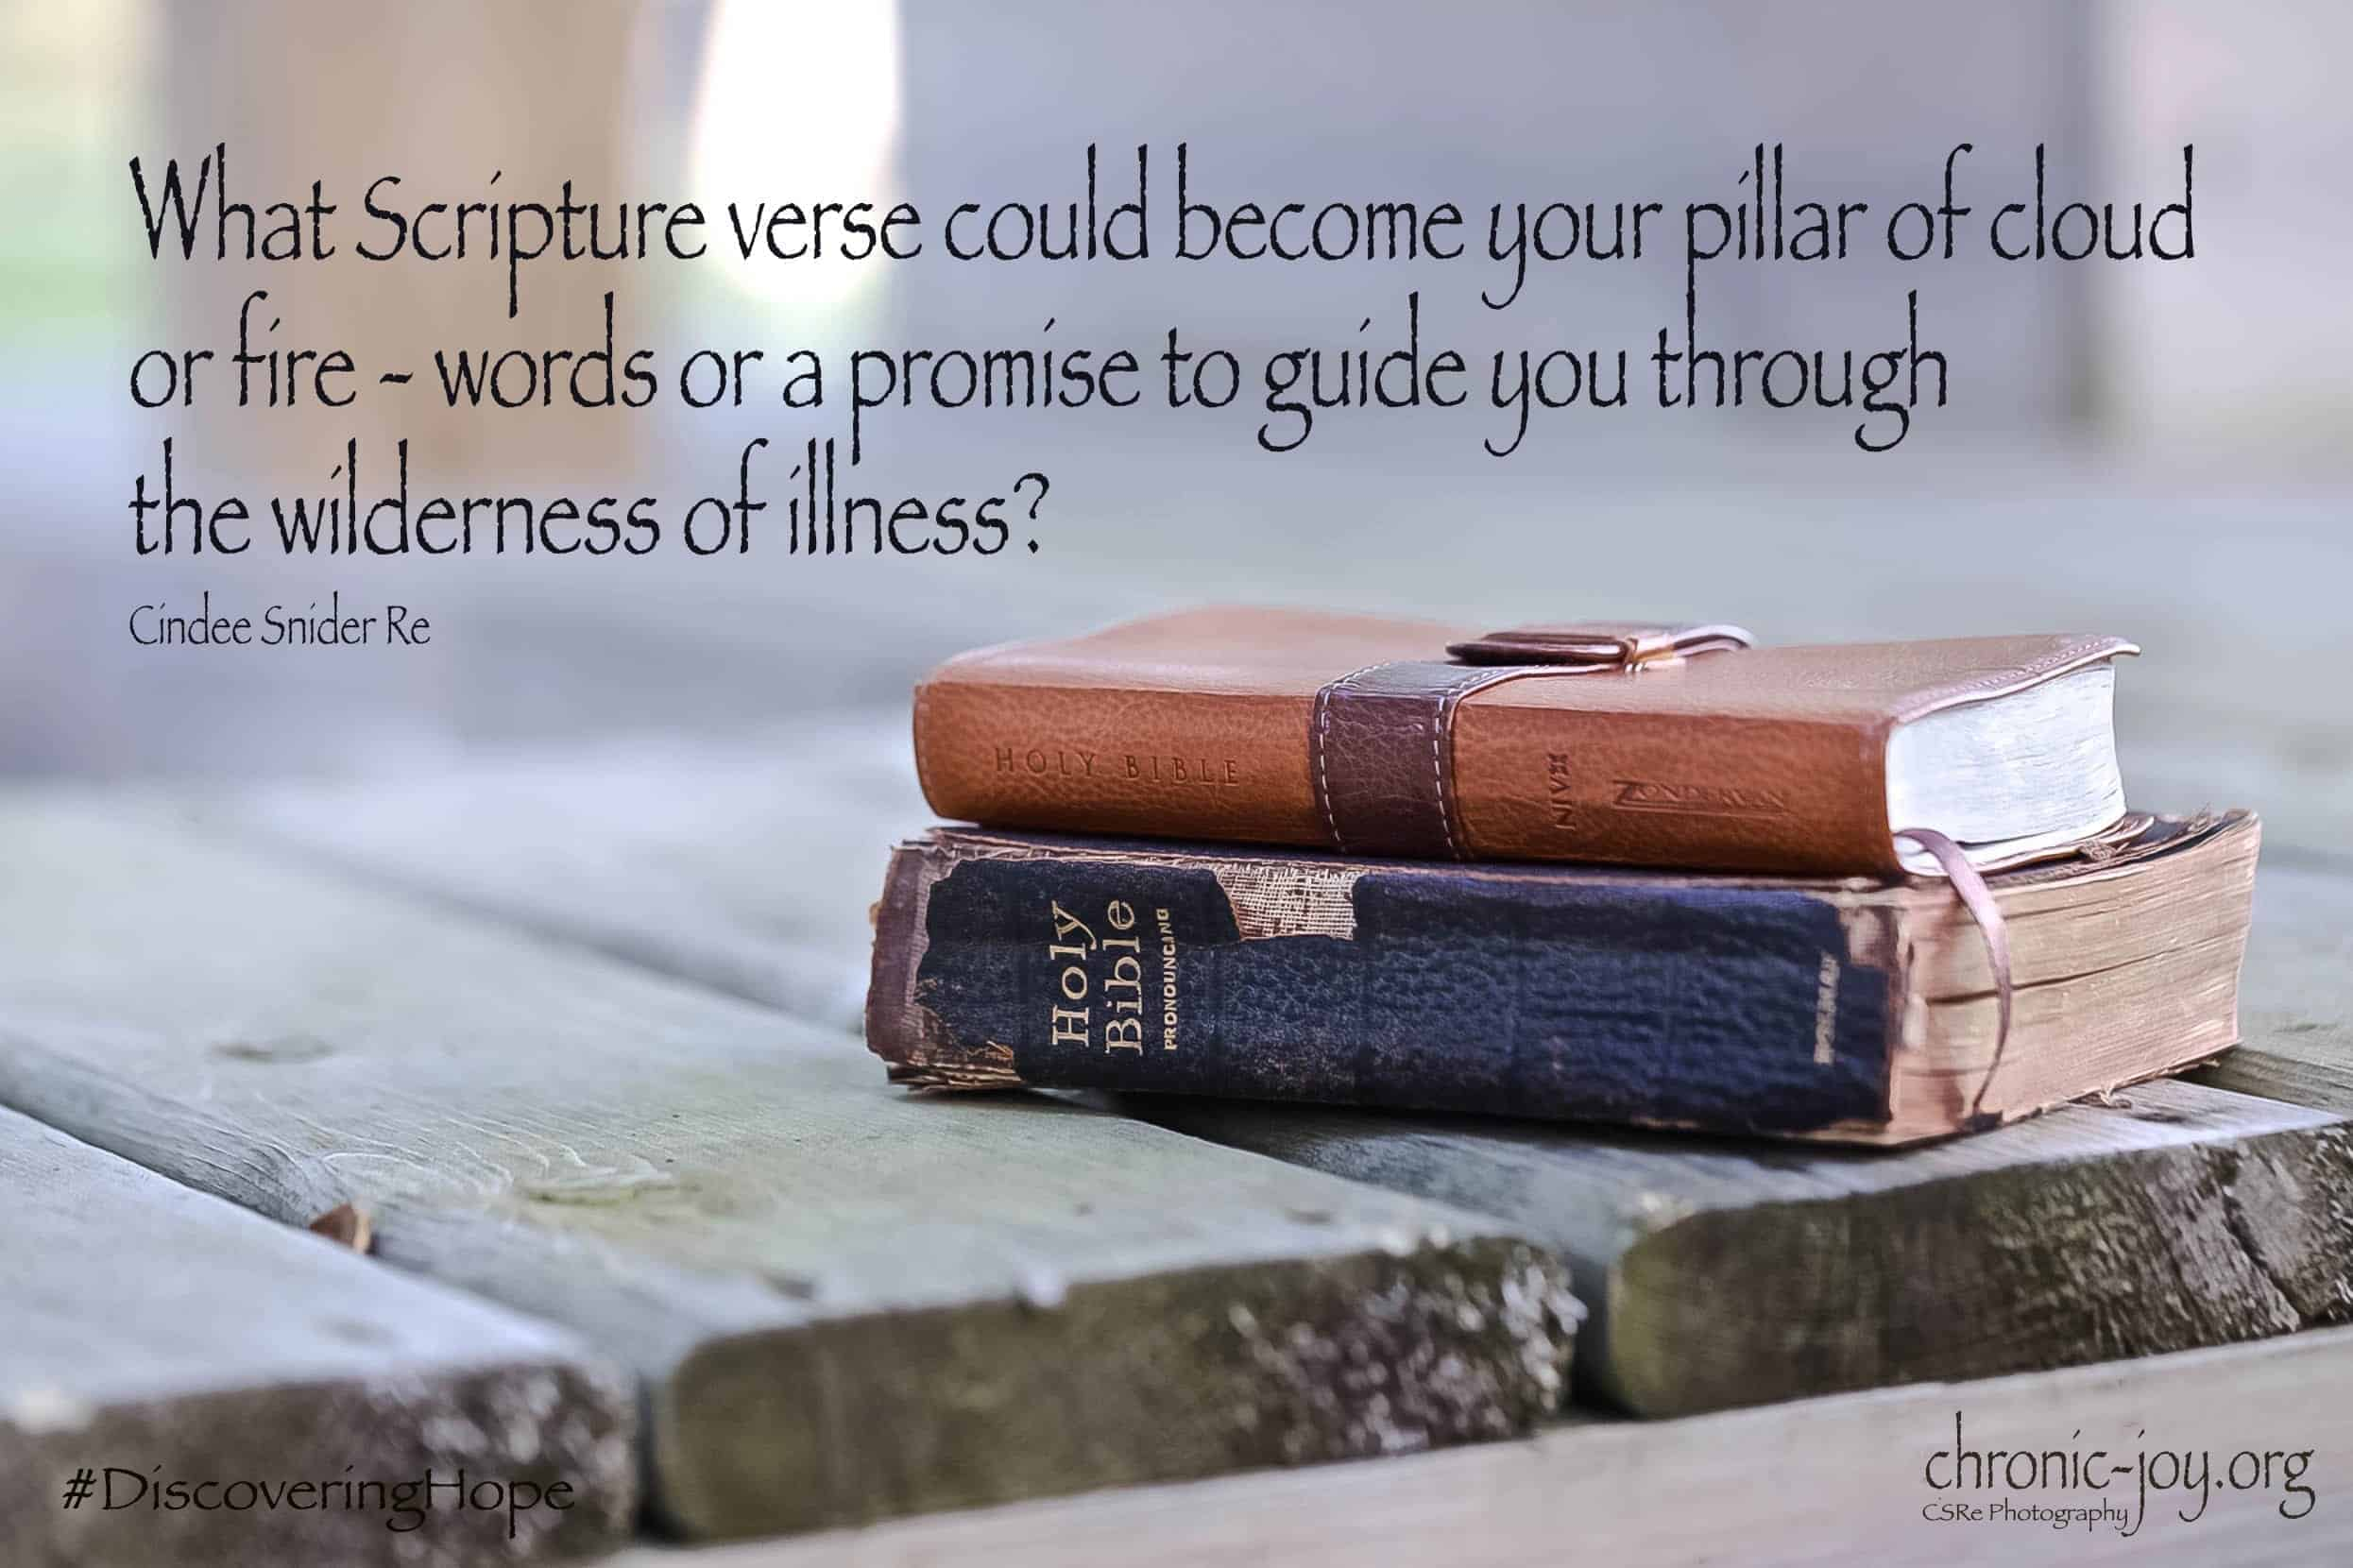 Scripture could become your pillar cloud